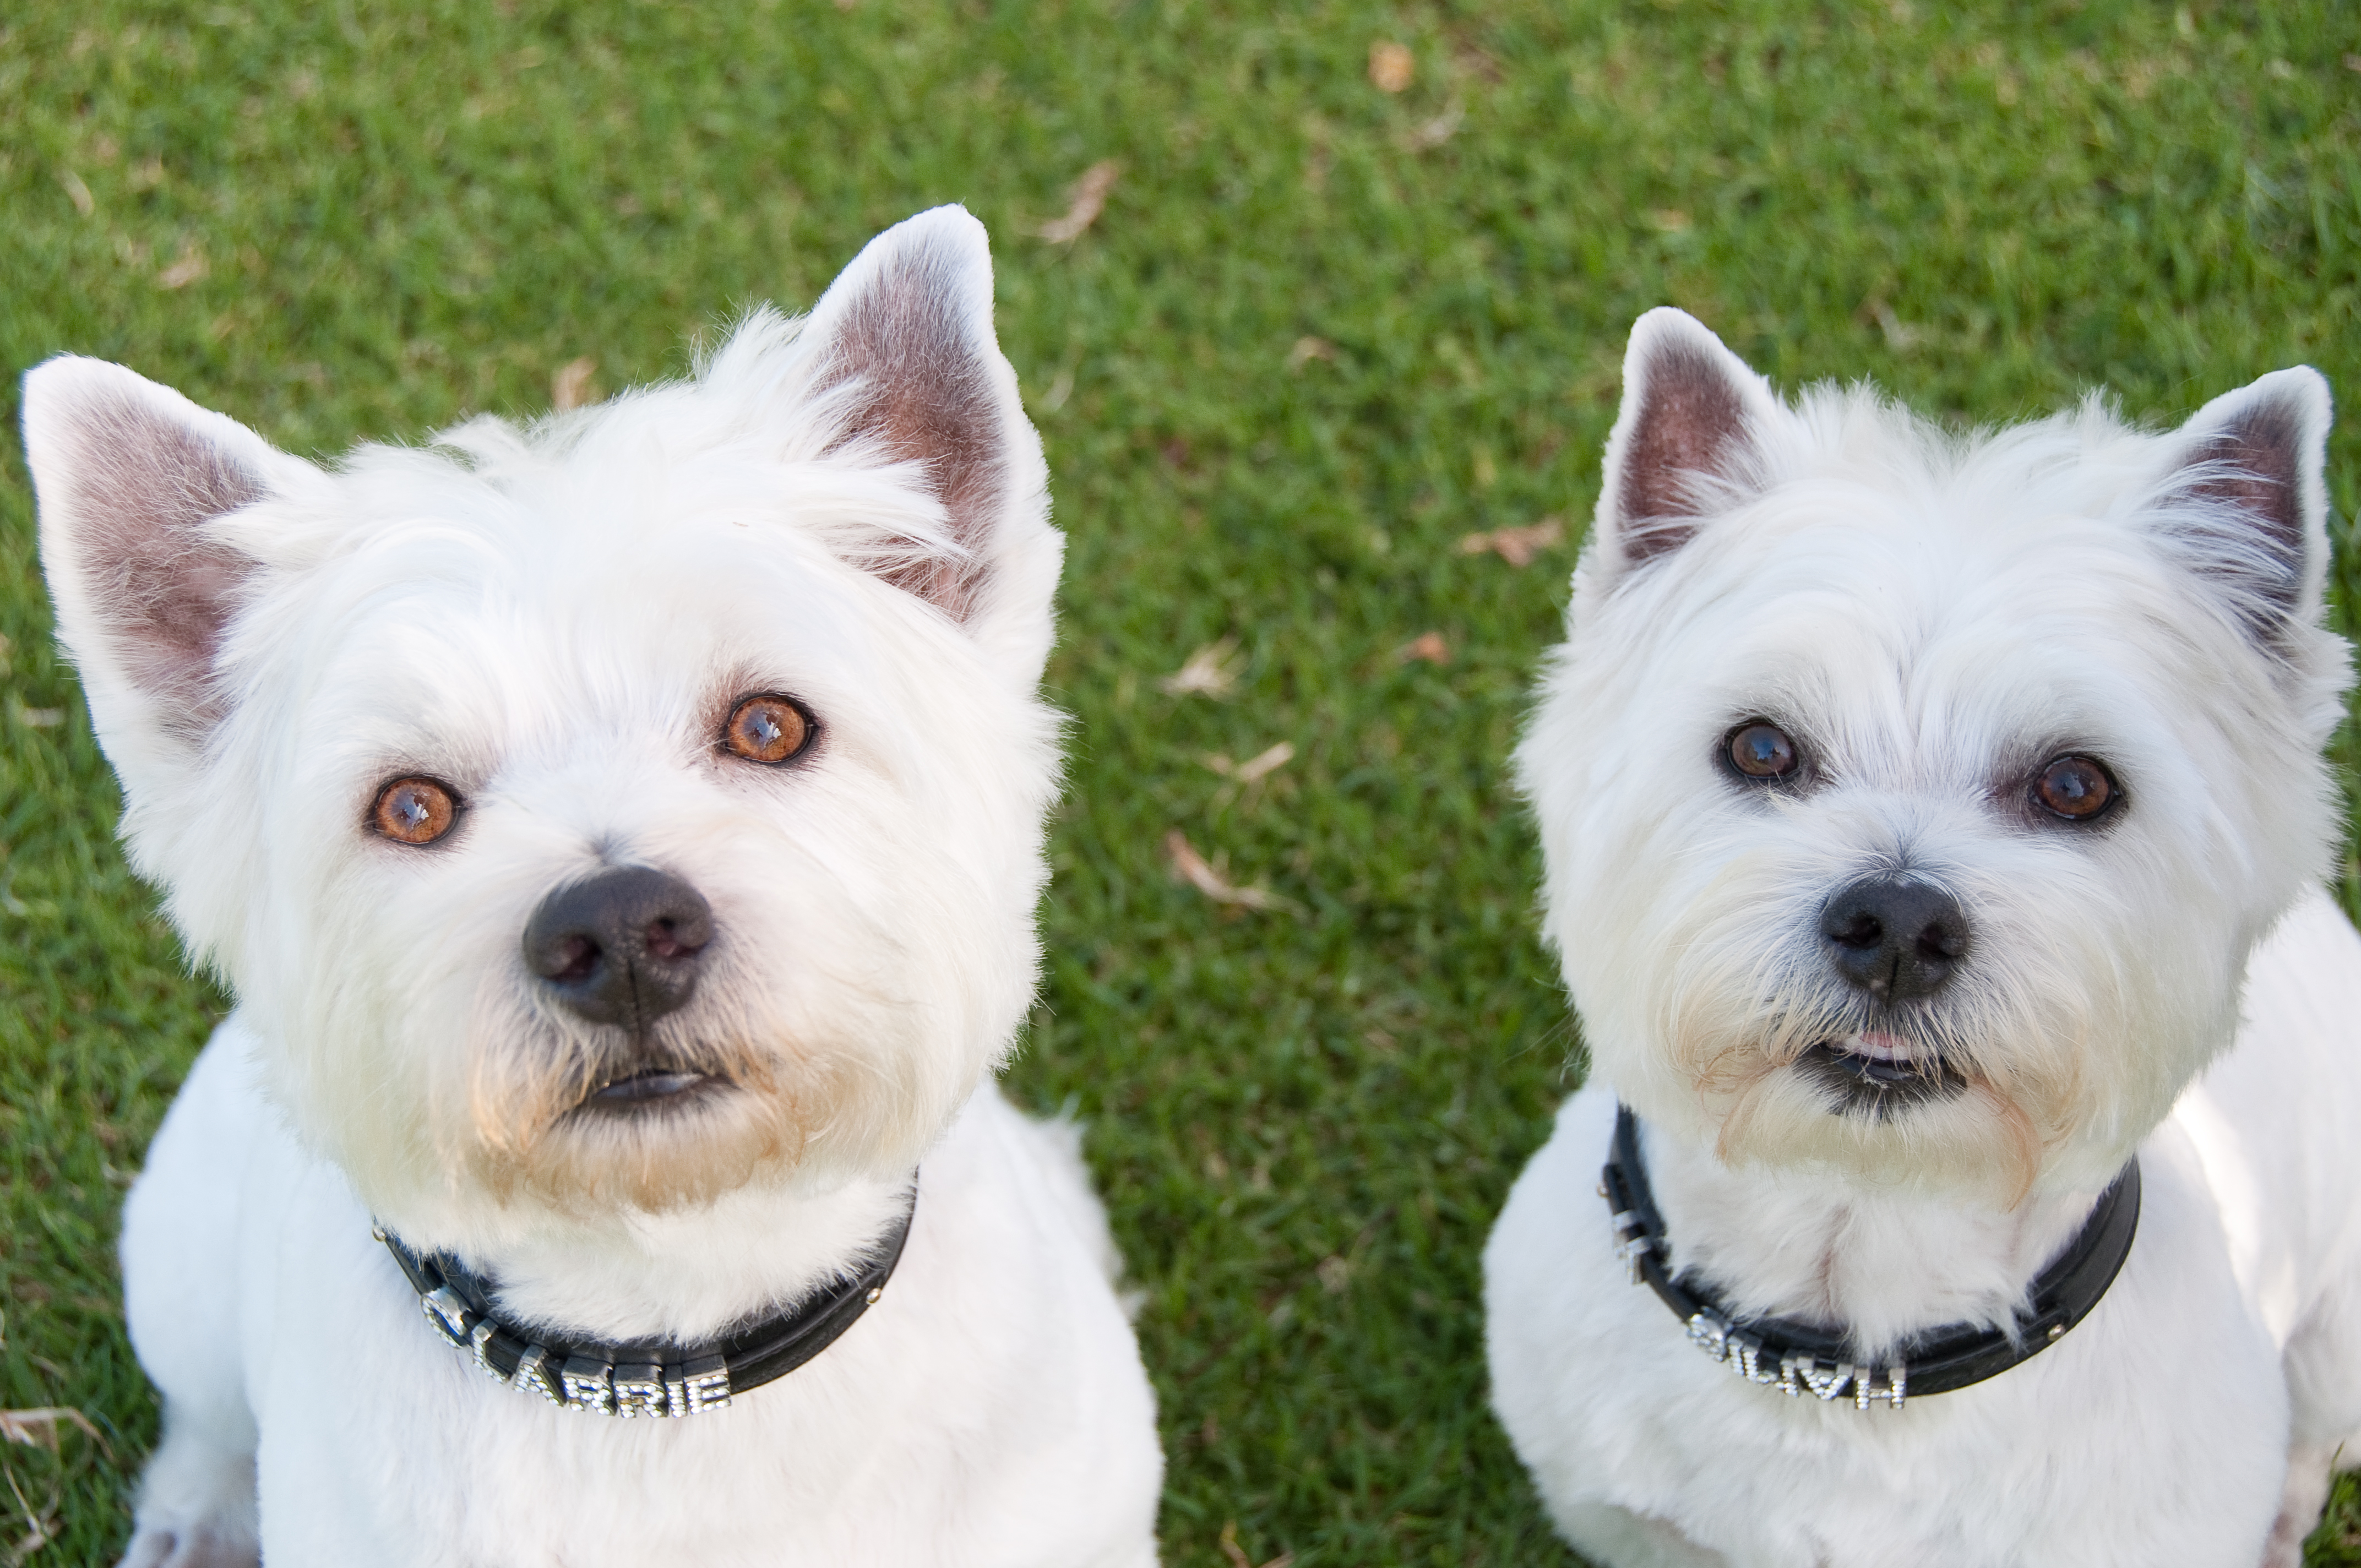 Dr. Chur-Hansen's own two boys: Hamish and Clarrie